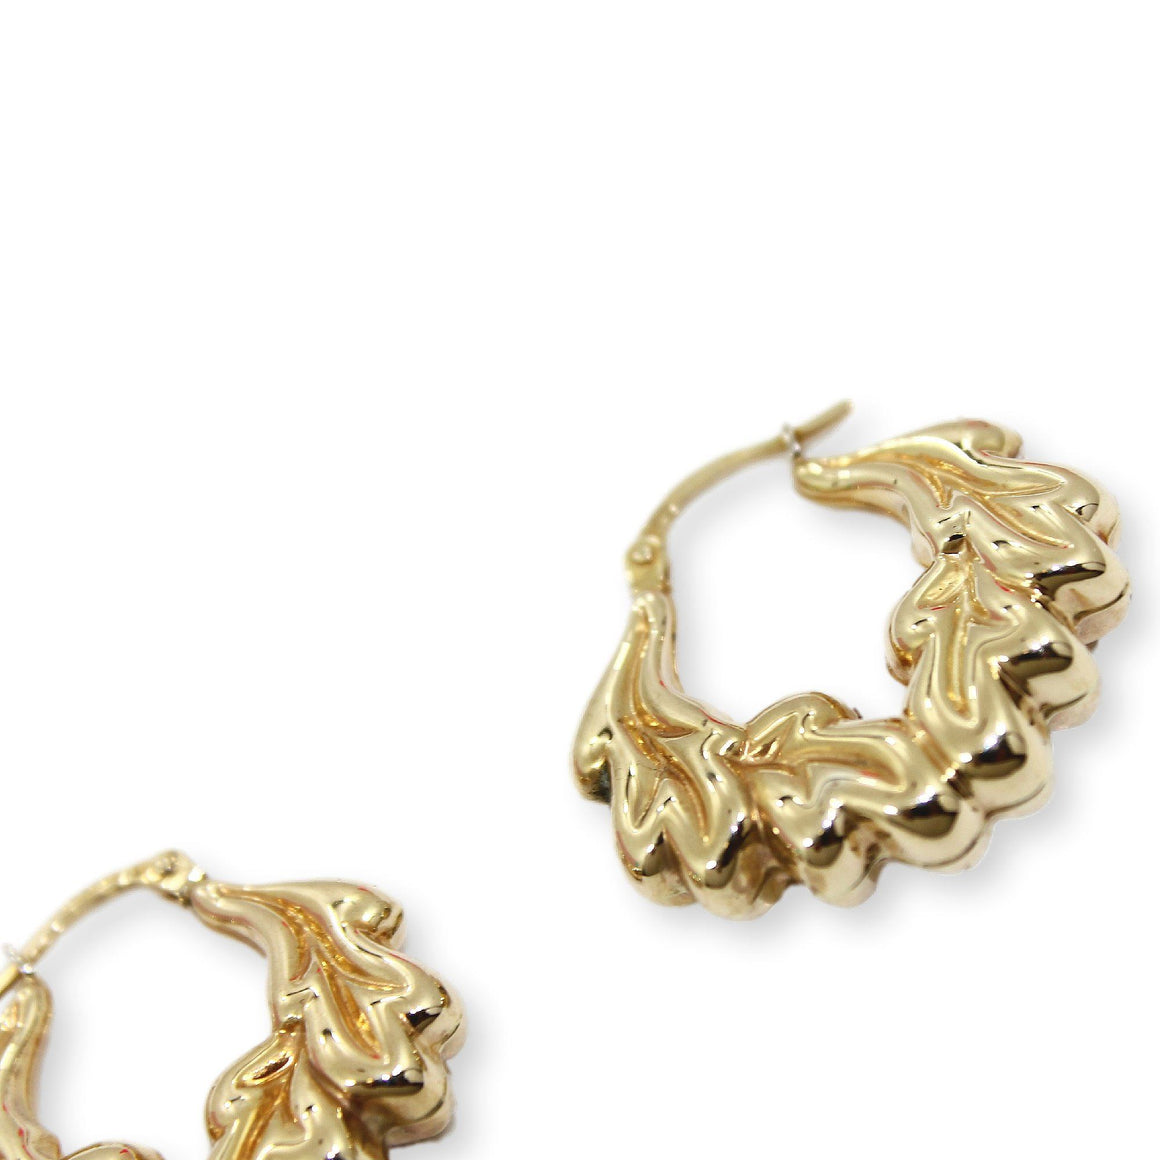 CHRISTY Earrings - 9K Gold